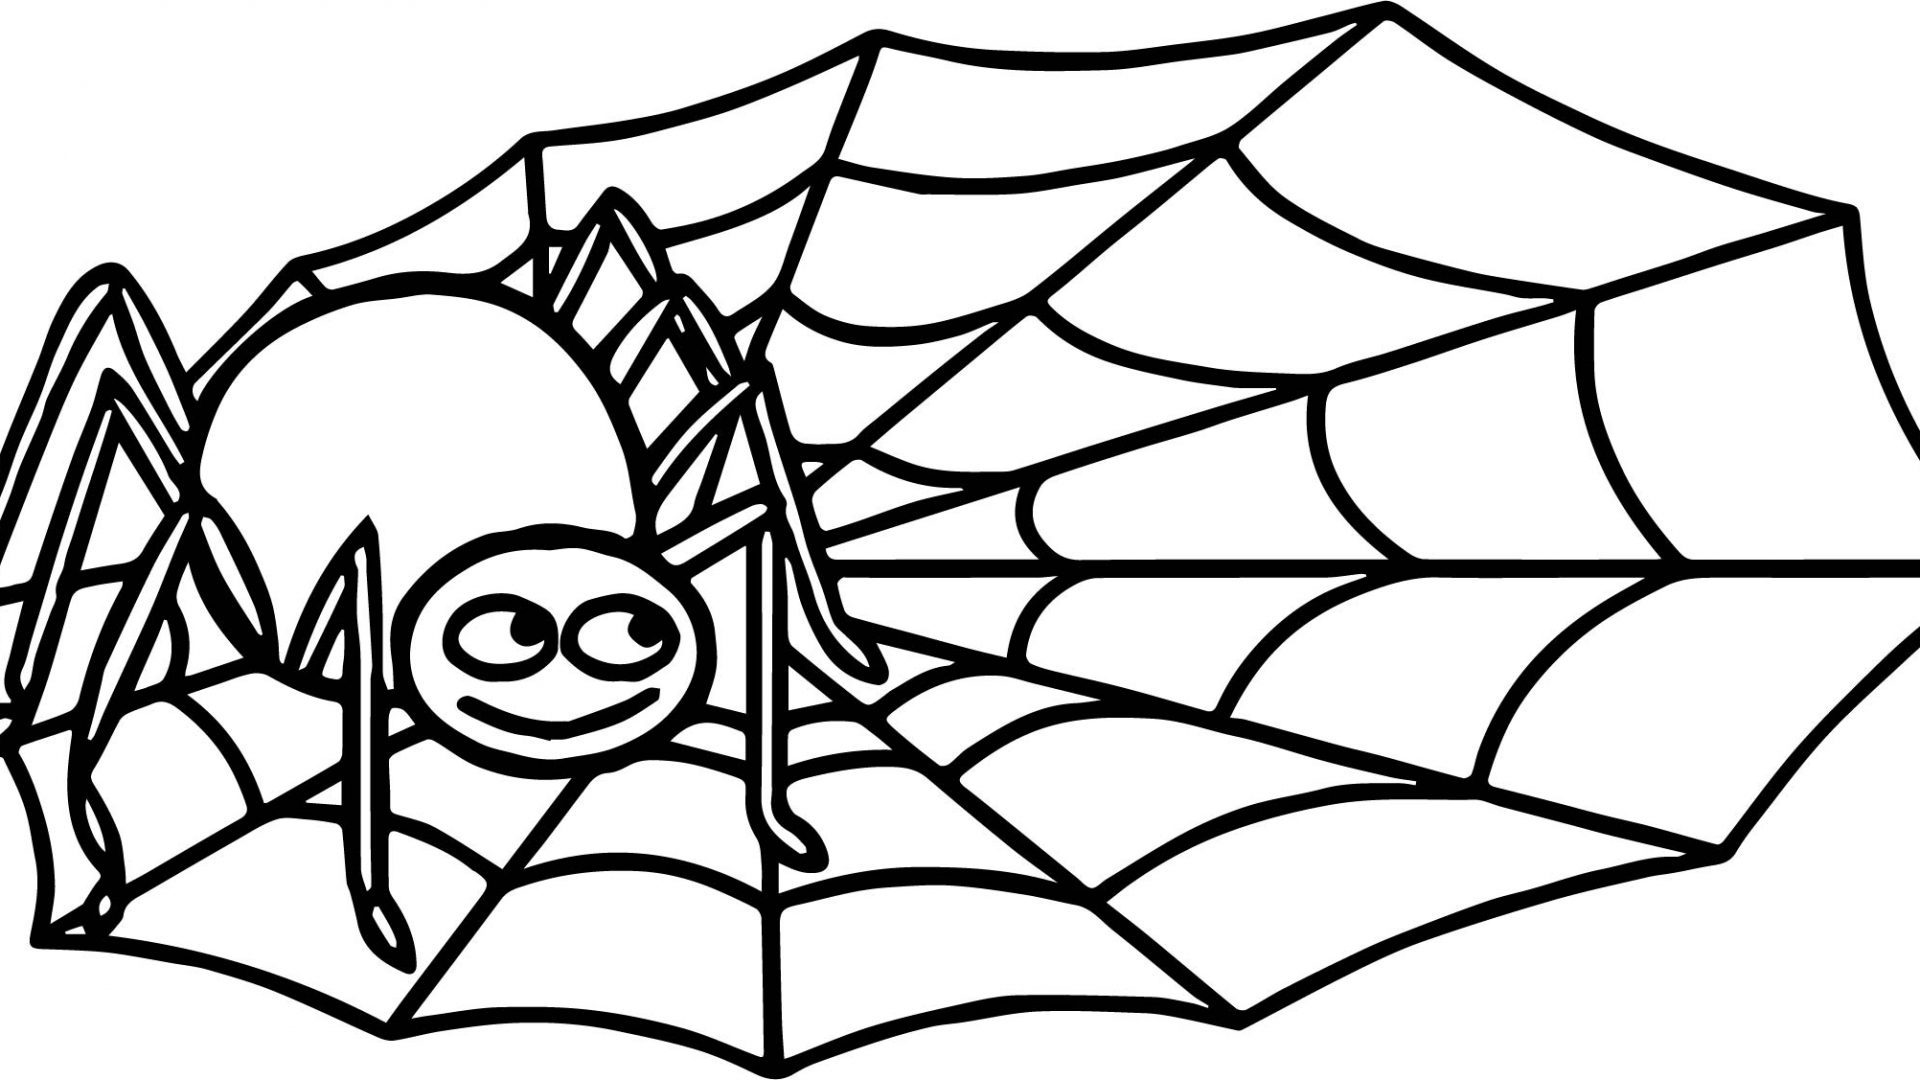 spider coloring page cartoon spider coloring pages at getdrawings free download spider coloring page